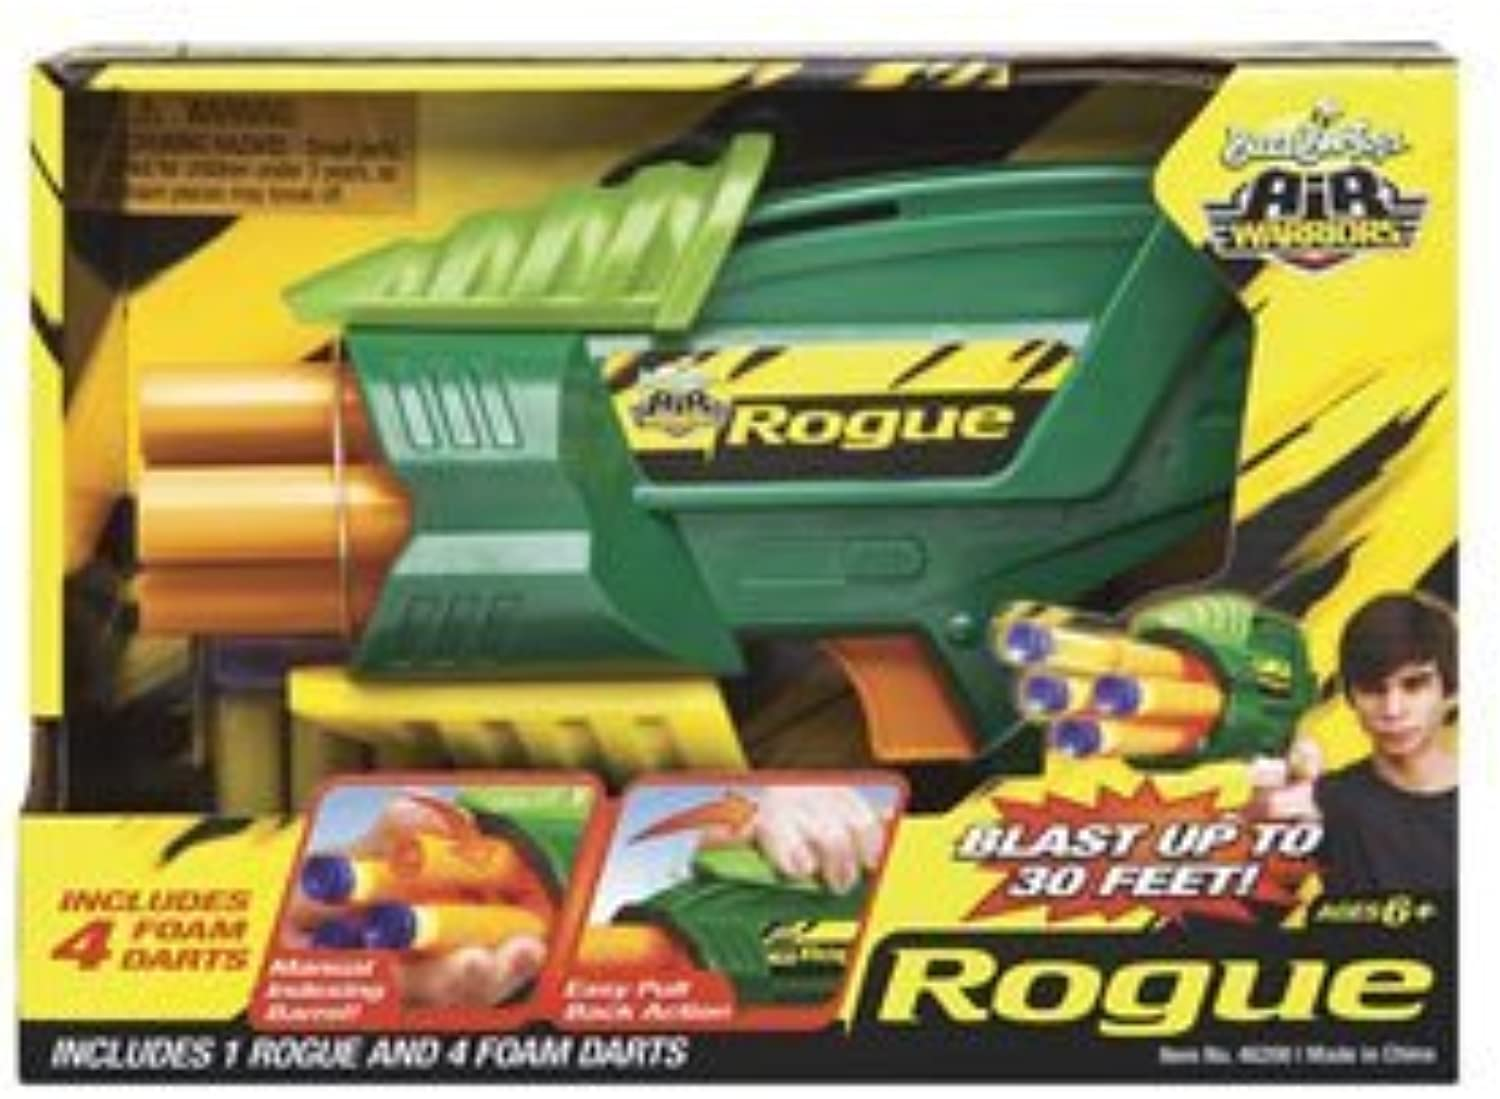 Buzz Bee Toys Air Warriors Rogue with Foam Darts by Buzz Bee